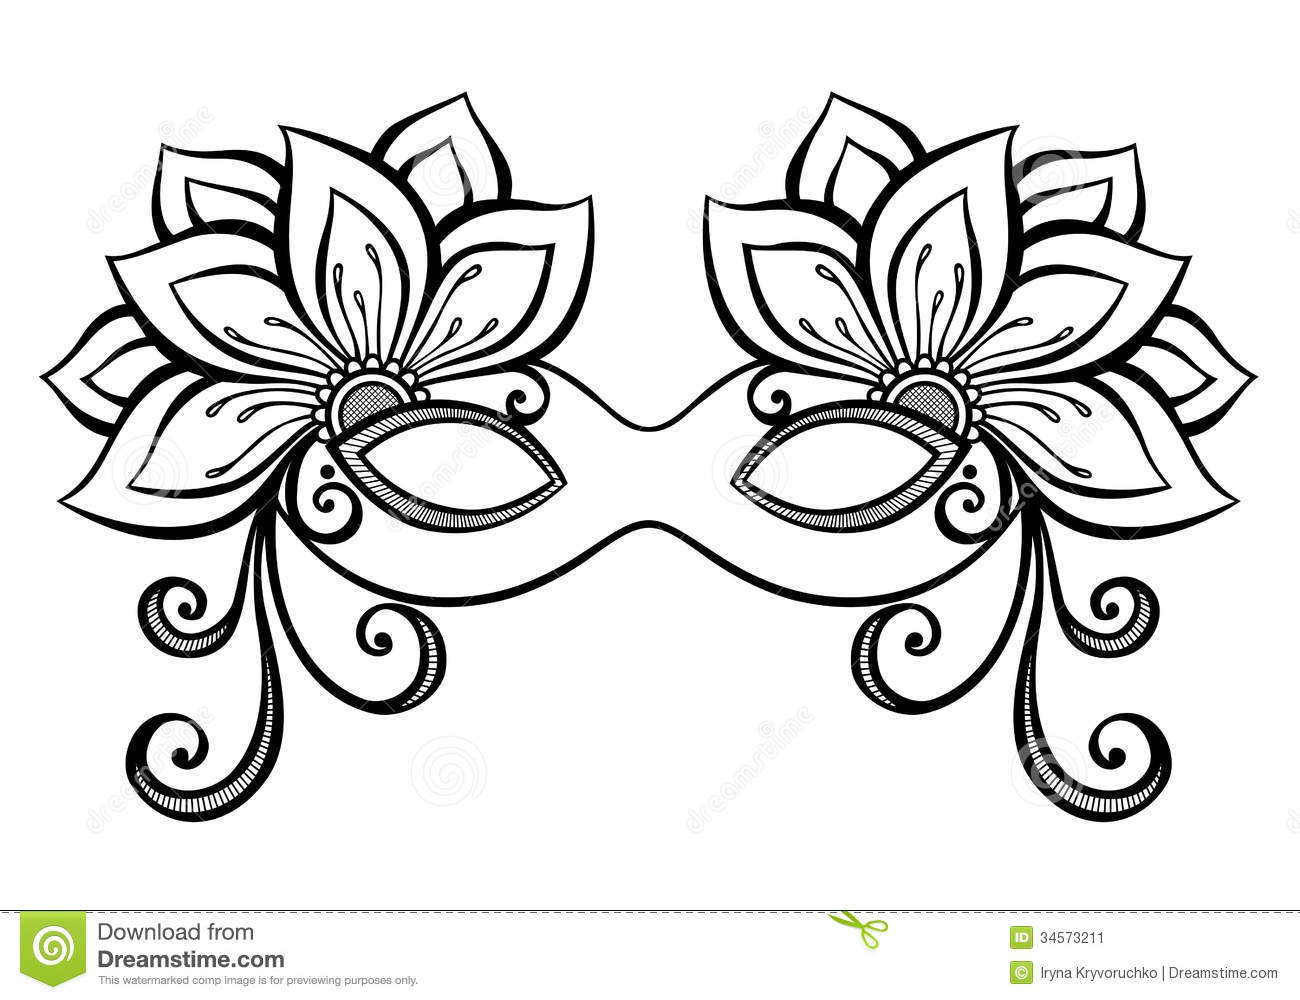 The Mask Coloring Pages At Getdrawings Com Free For